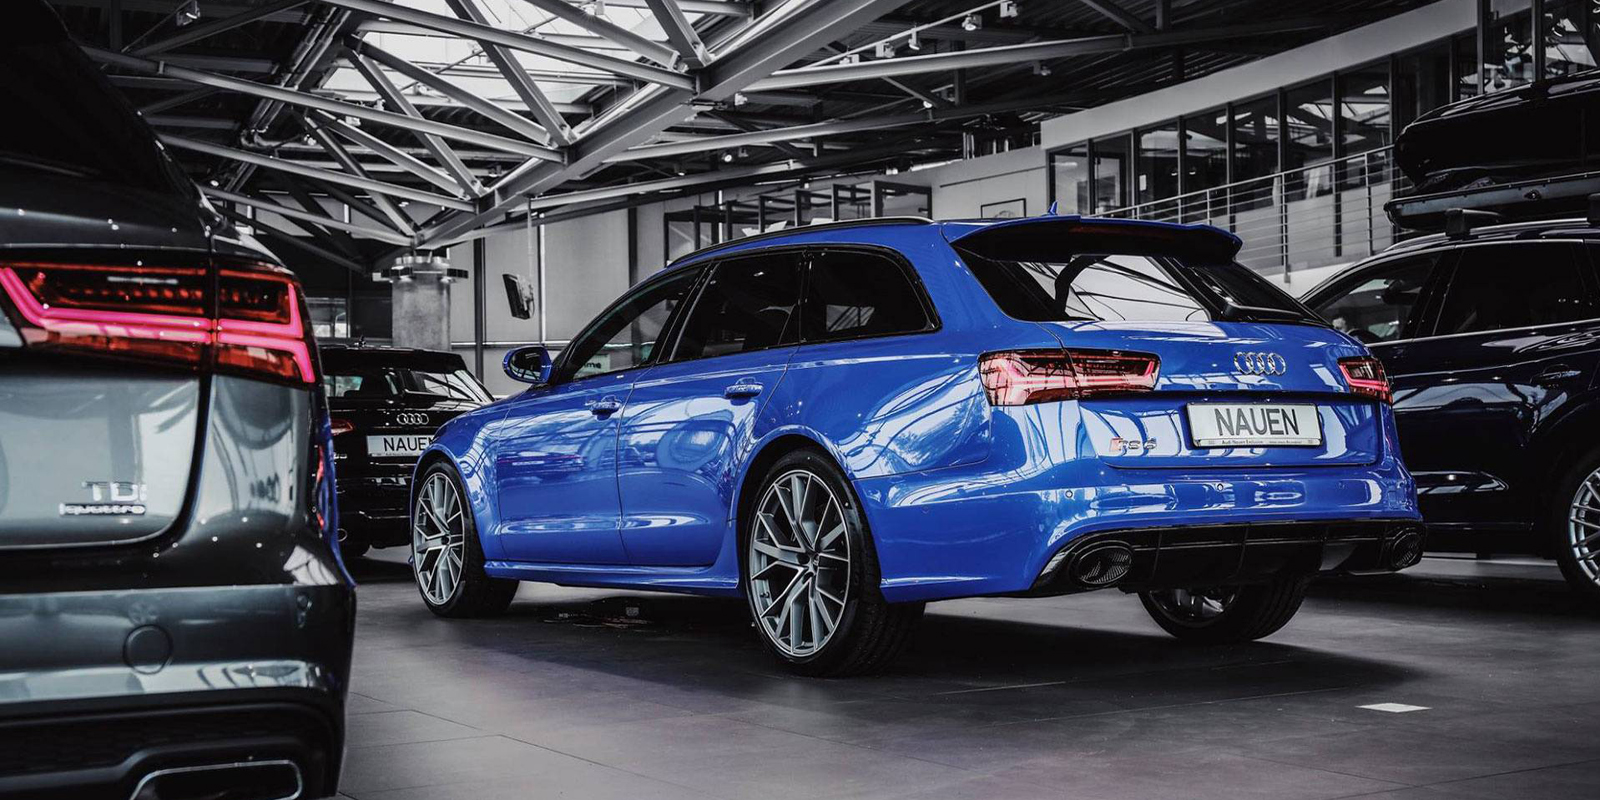 Rs6 Avant Performance Nogaro Blue Vwvortex